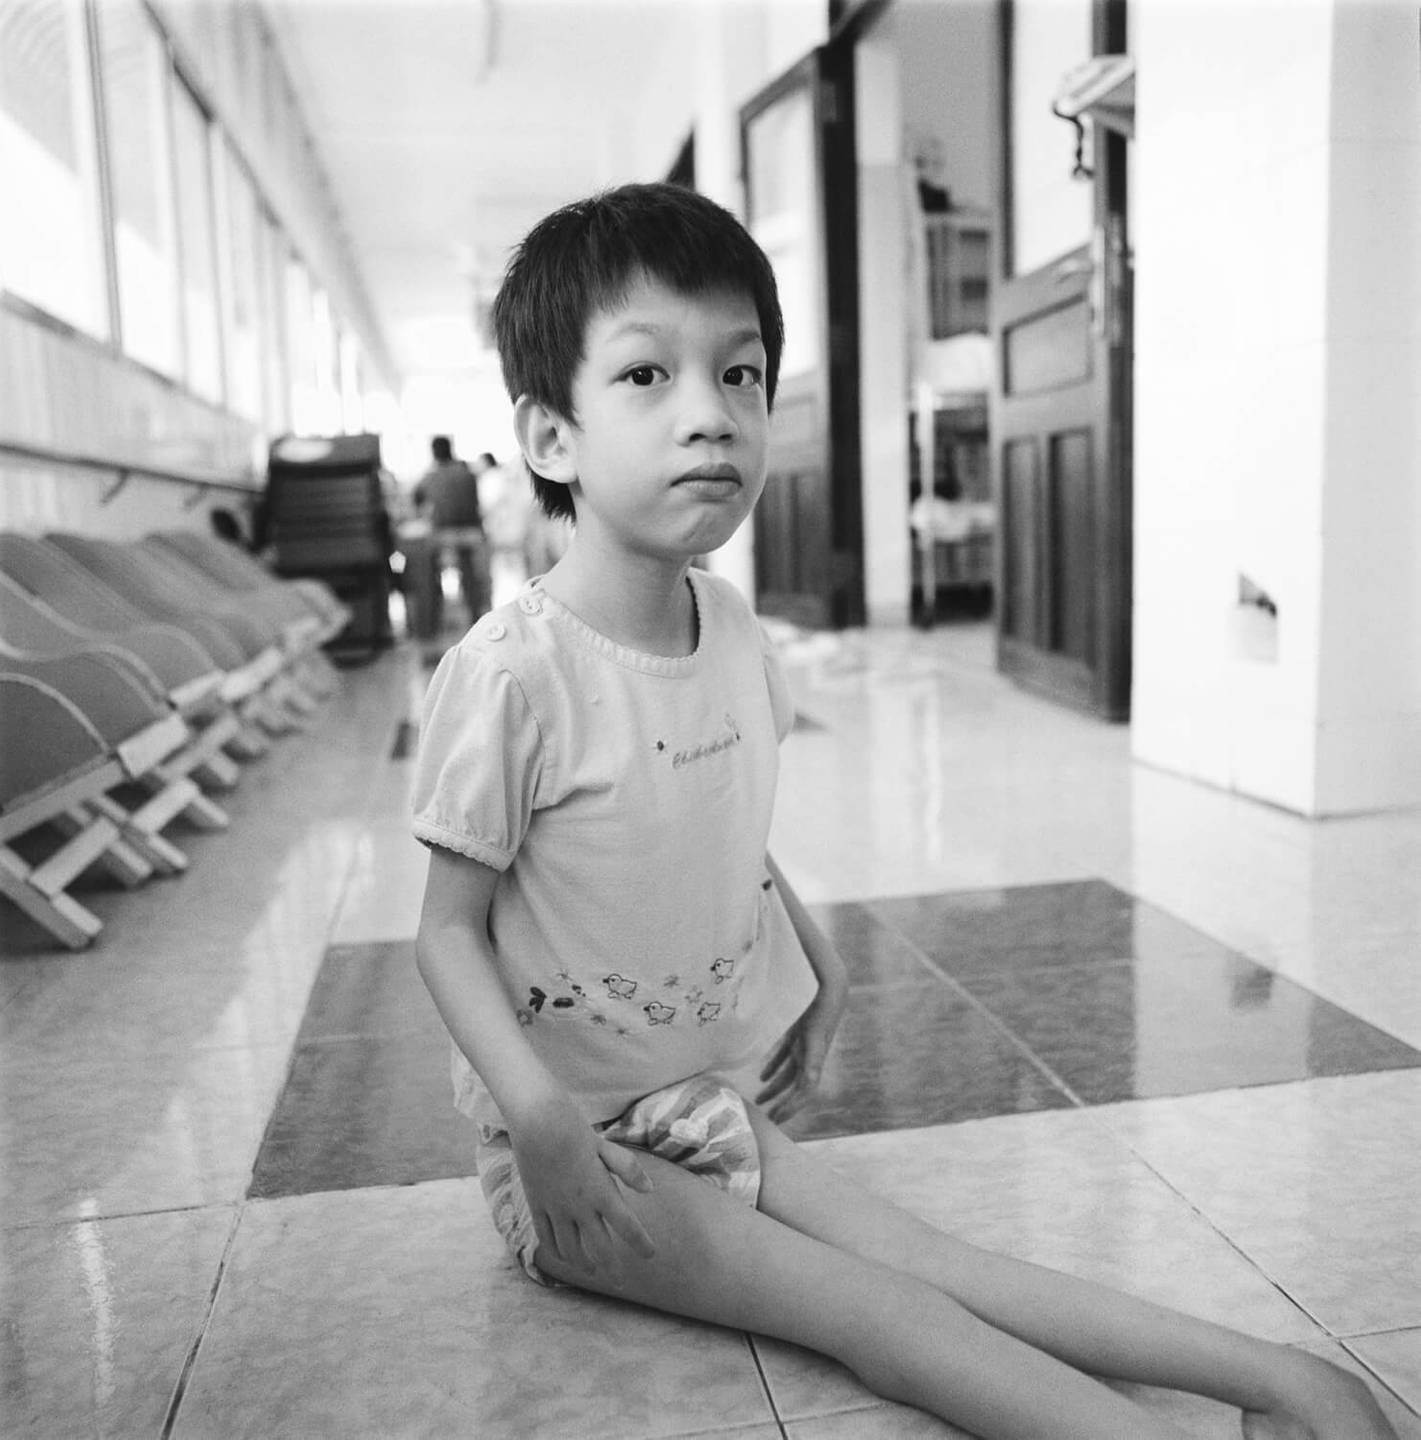 A deformed Asian child in a diaper, seated on a tile floor.